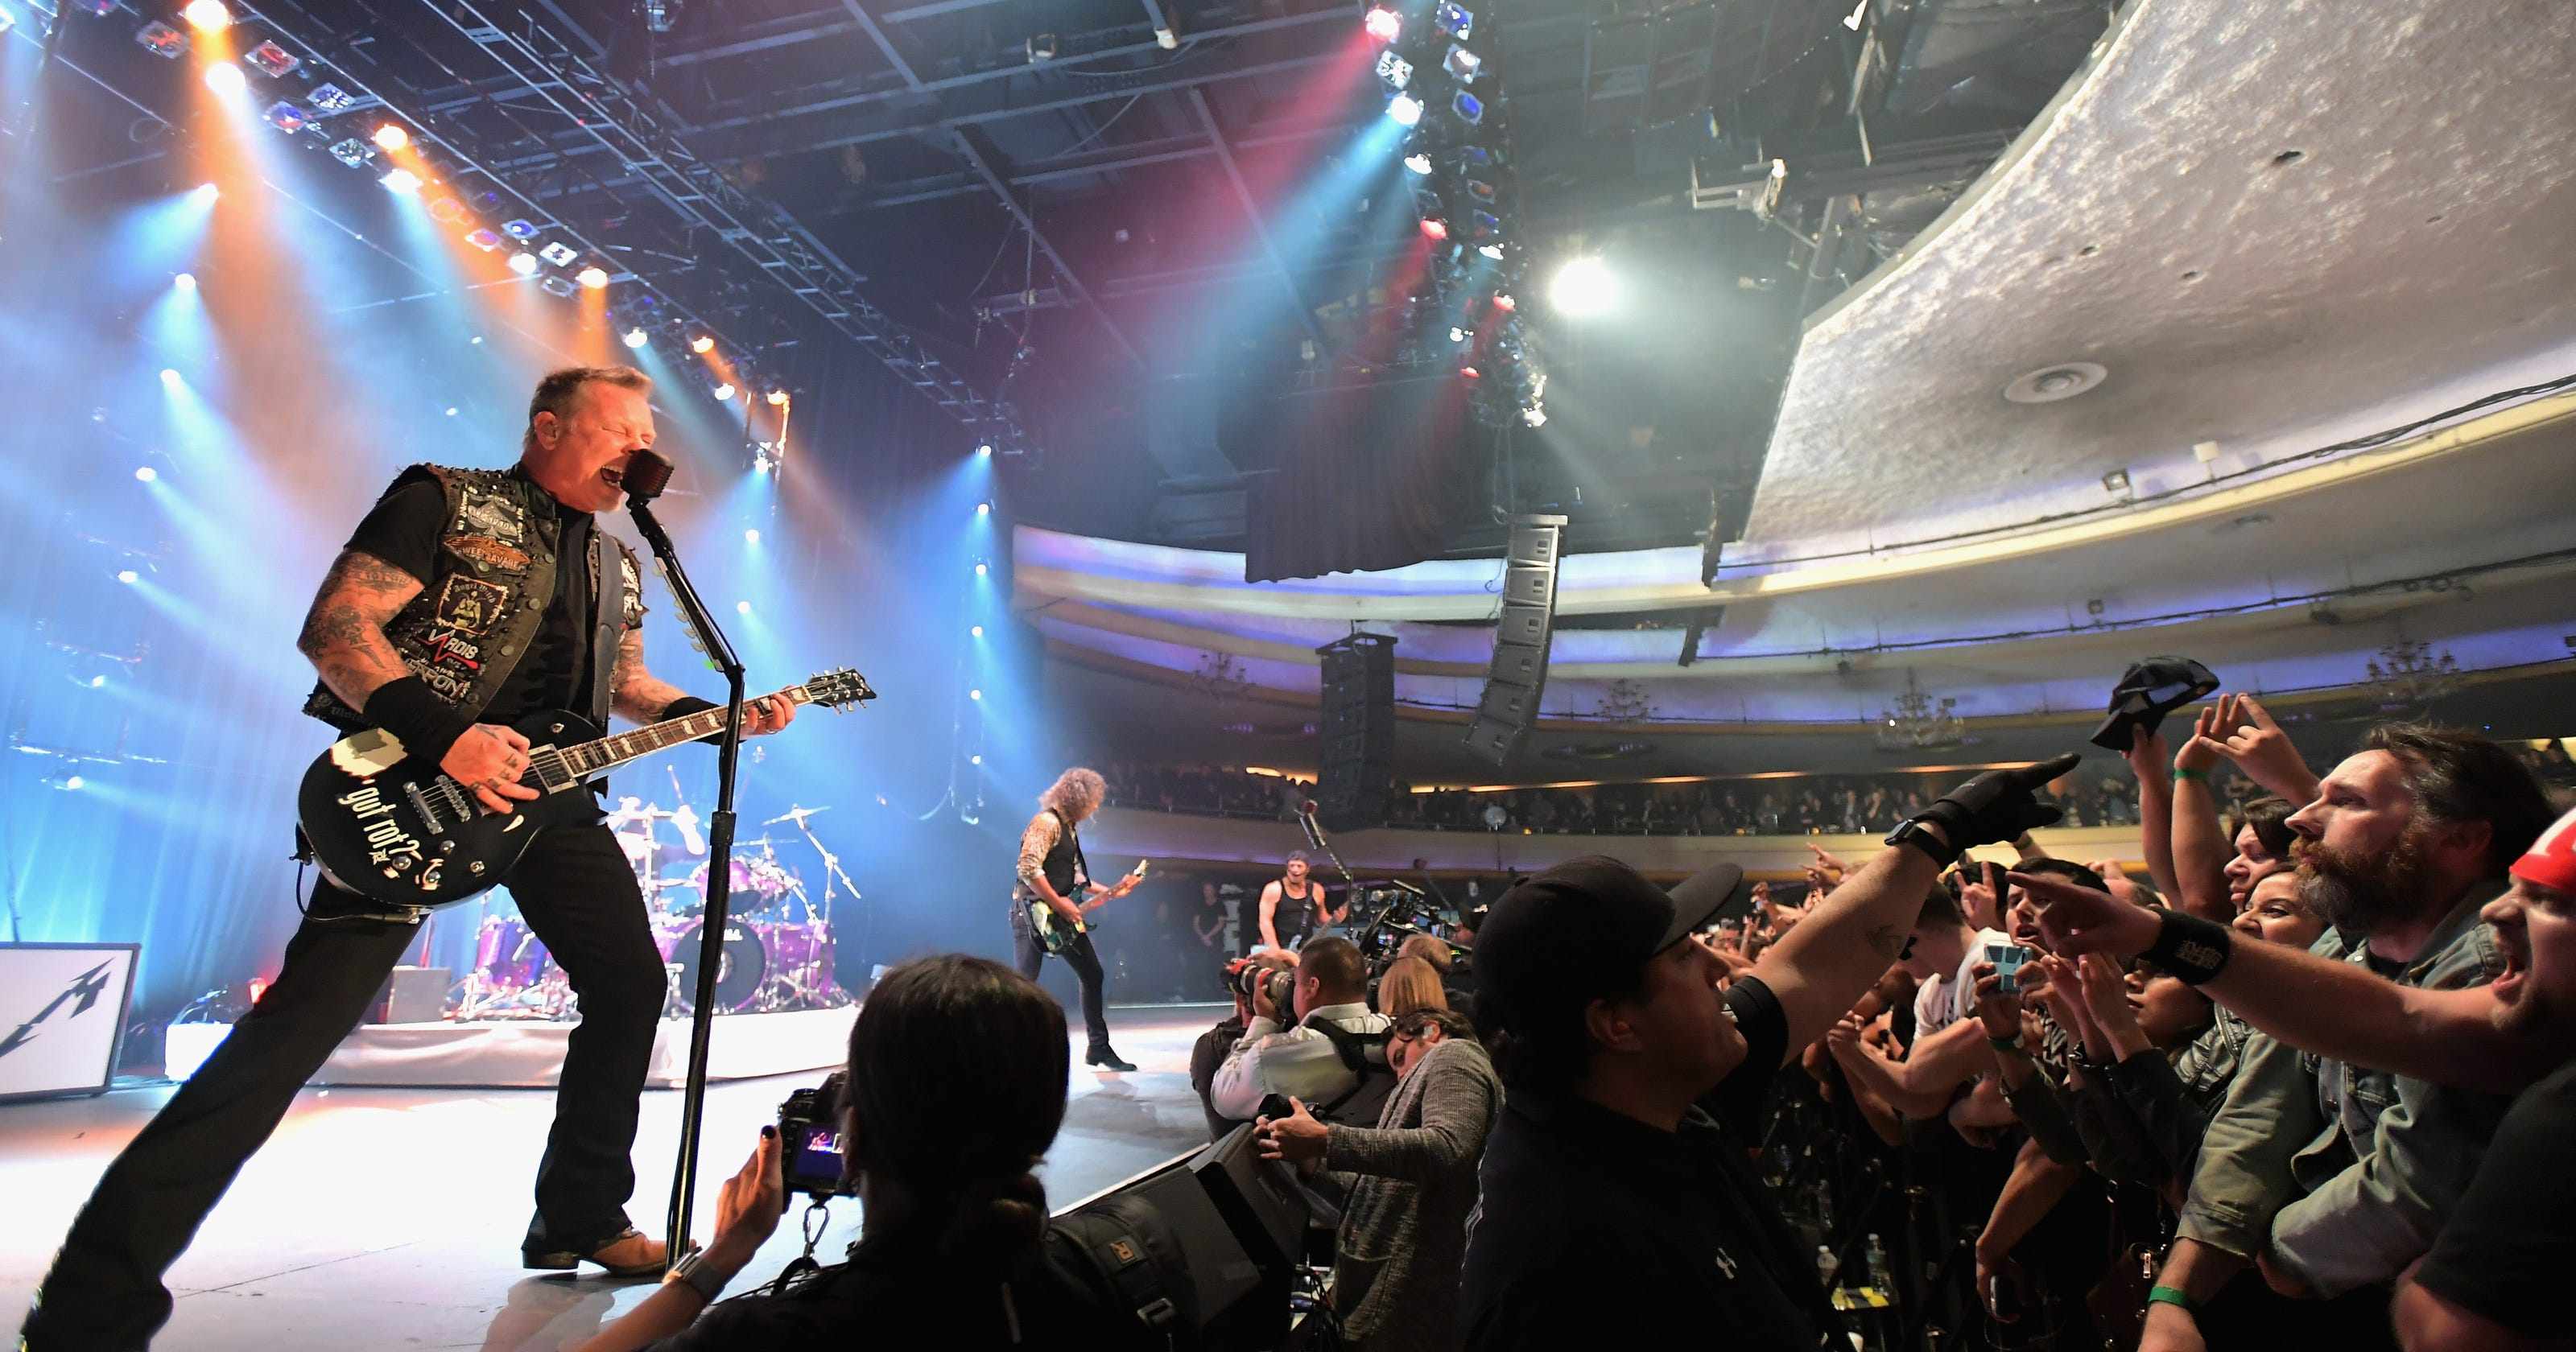 Metallica at MetLife: Everything you need to know